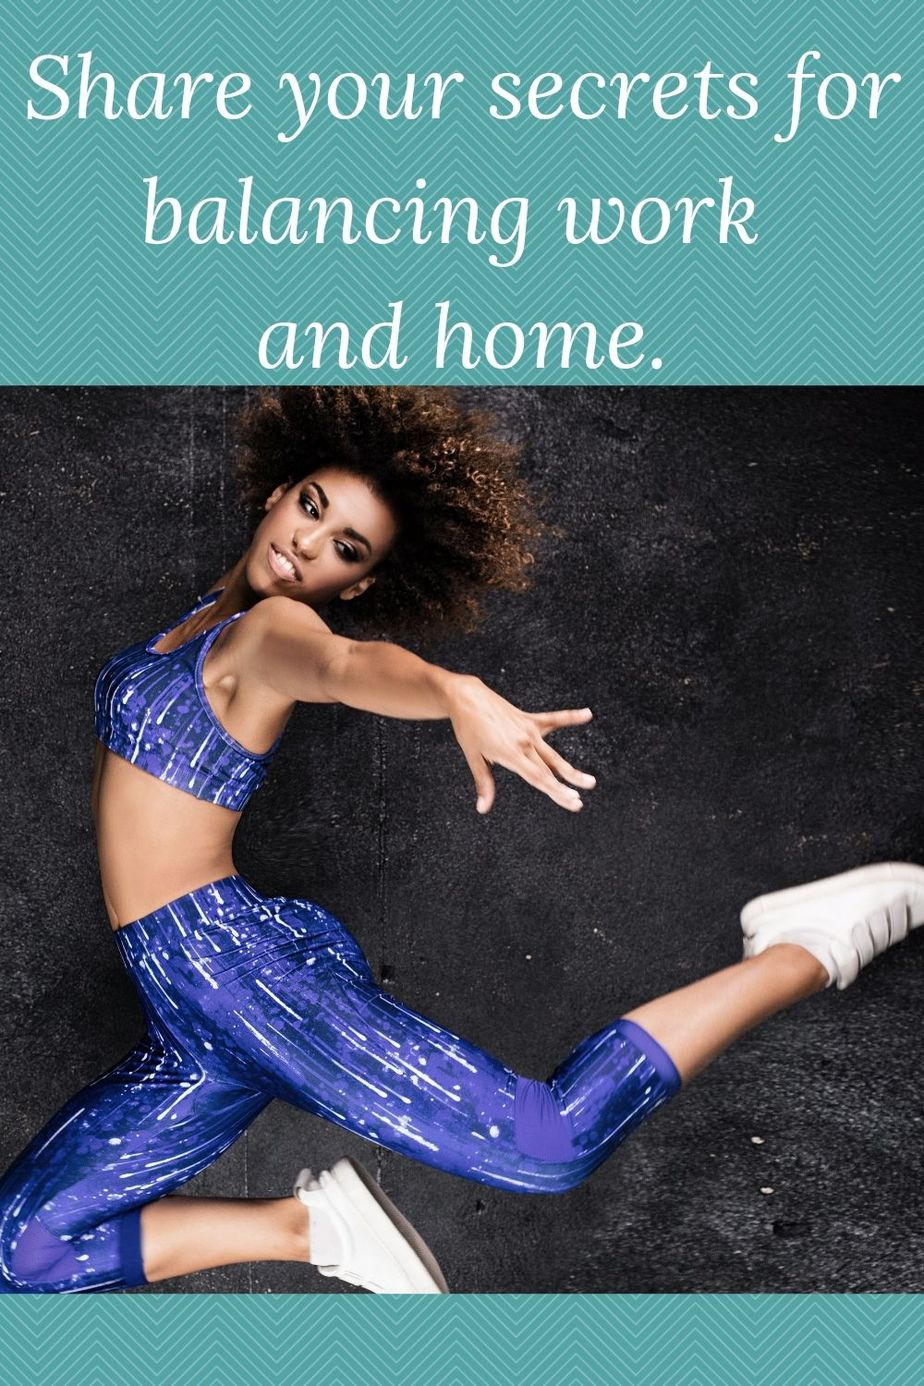 photo of woman in arobatic position and the words Share your secrets for balancing work and home.